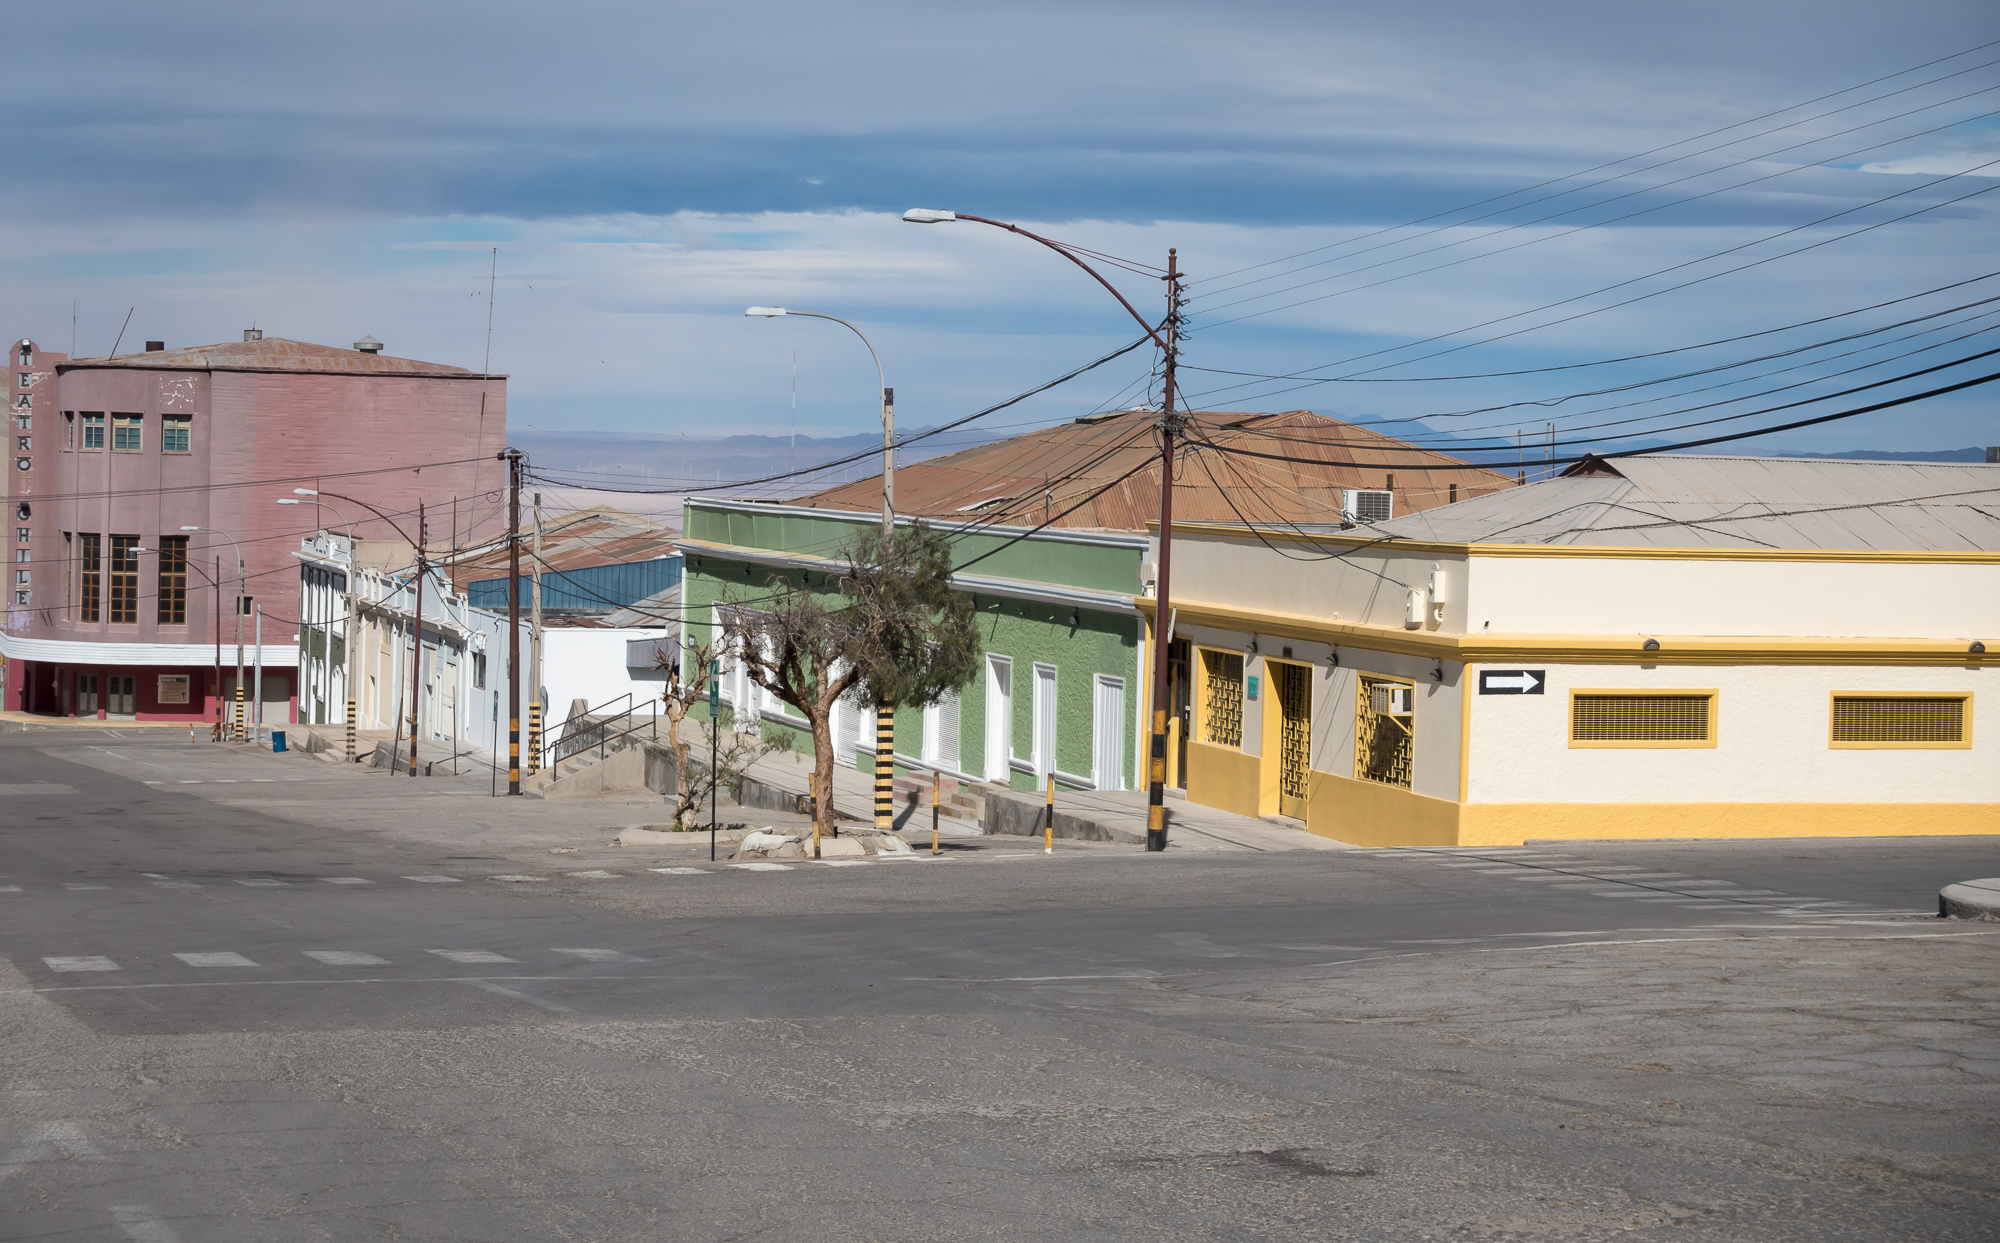 Visiting Chuquicamata ghost town and mine